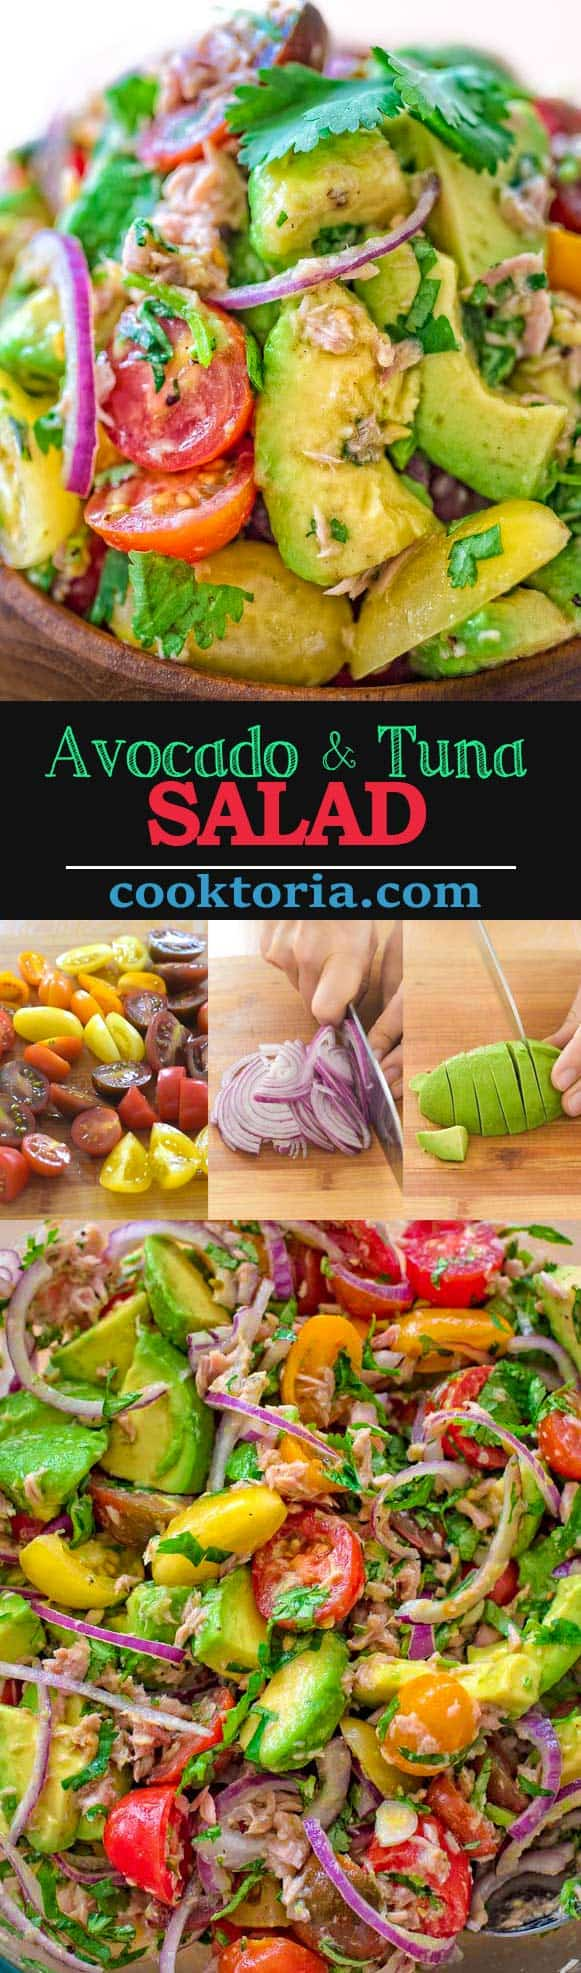 Very simple, flavorful, and tasty, this Avocado Tuna Salad requires just a few ingredients and 10 minutes of your time.❤ COOKTORIA.COM